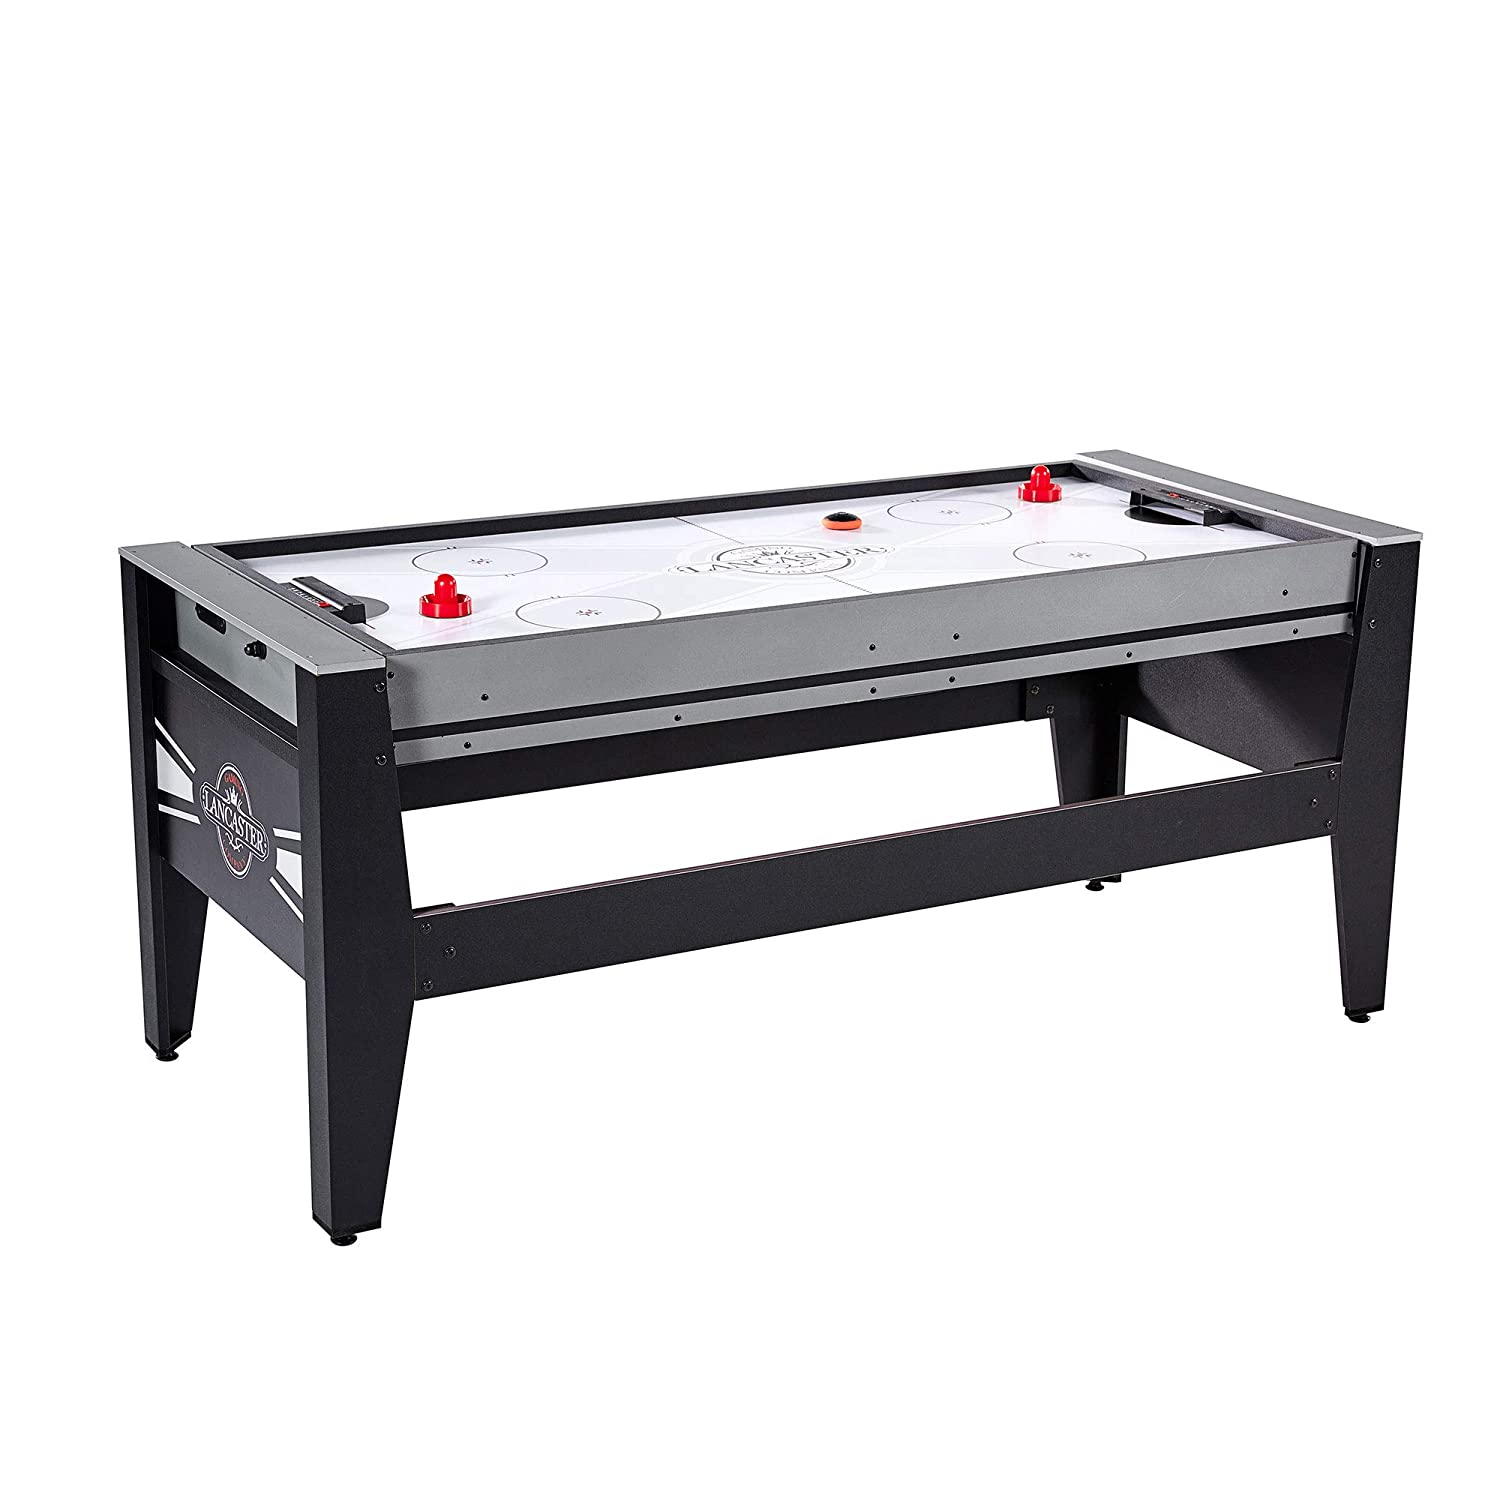 39229572df3 Amazon.com  MD Sports Lancaster 4 in 1 Air Hockey Pool Ping Pong Football  Swivel Game Table  Toys   Games